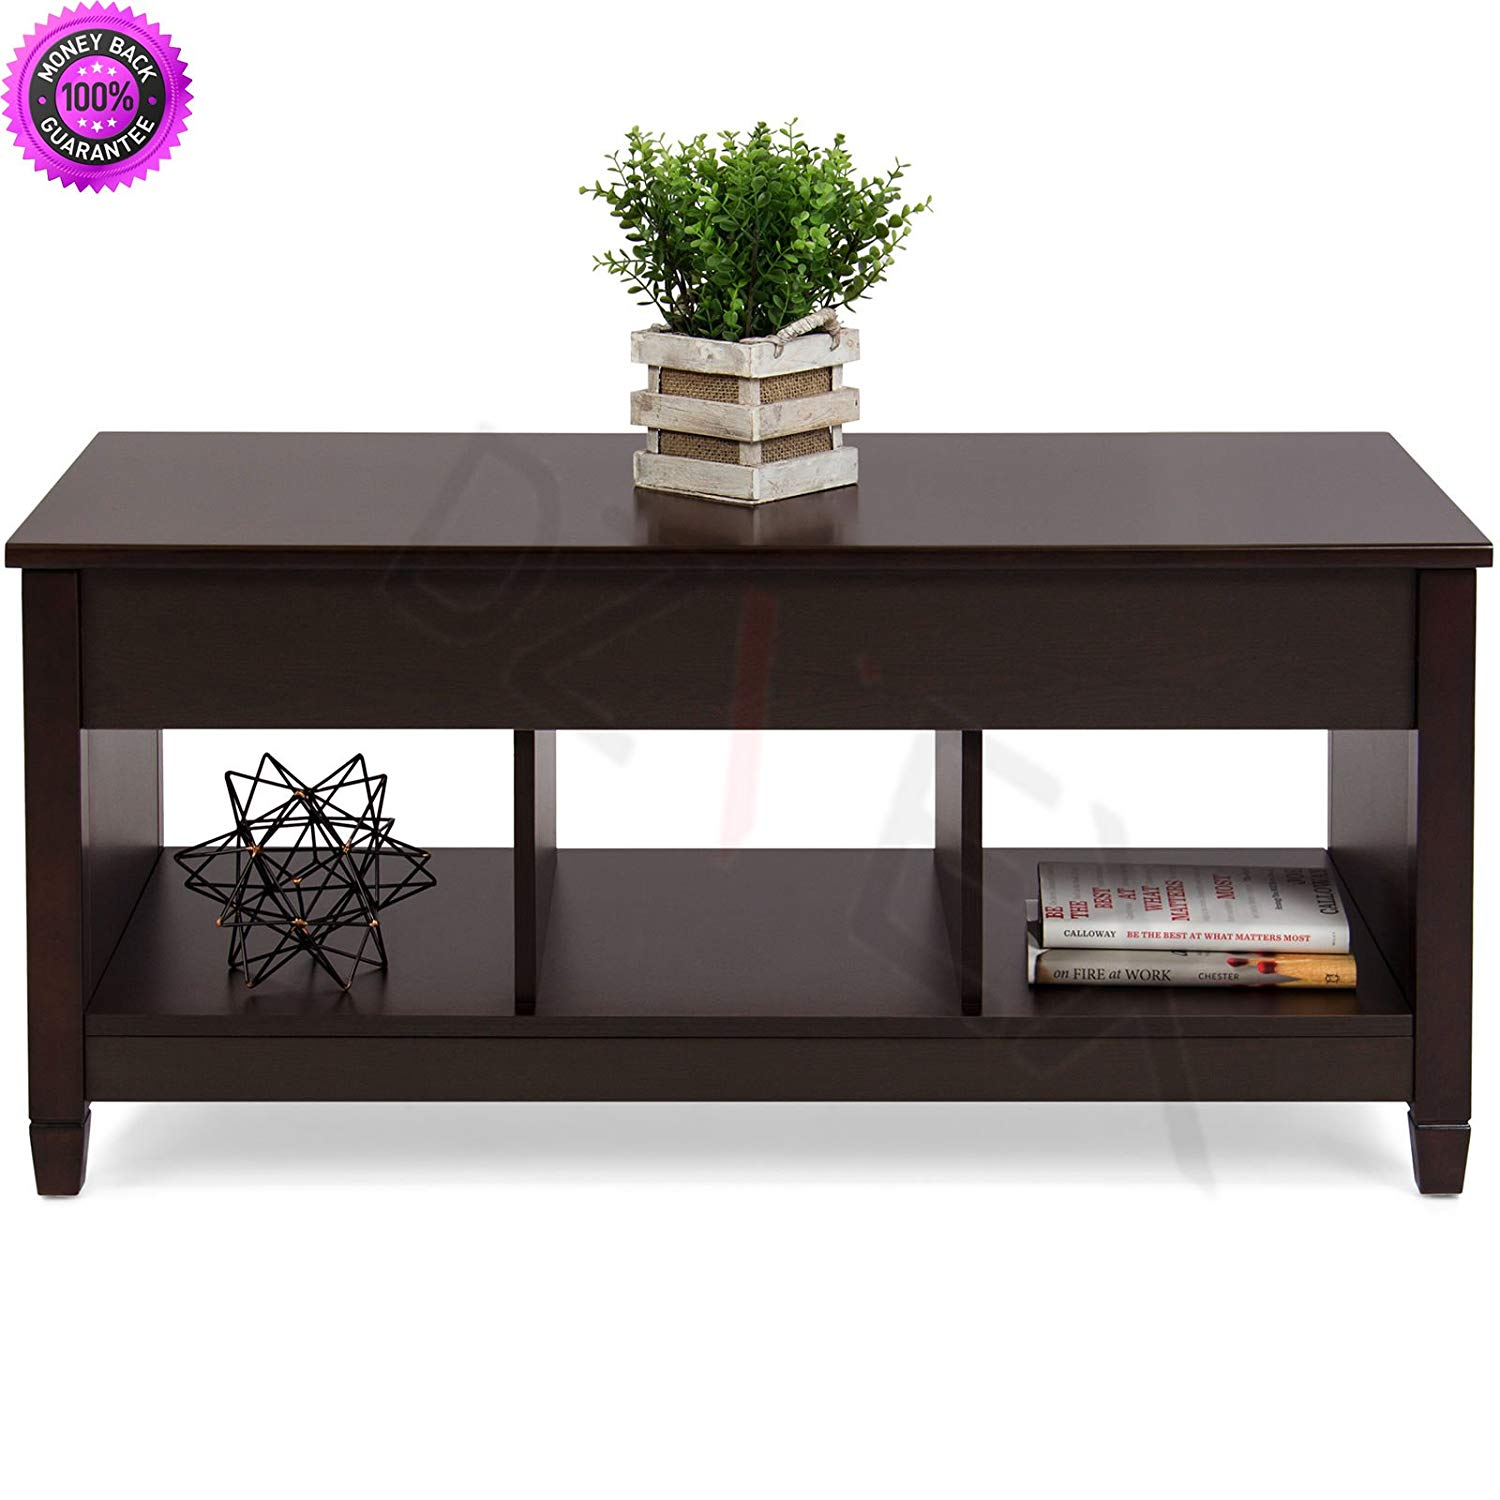 DzVeX_Home Lift Top Coffee Table Furniture Hidden Compartment And kitchen tables folding tables accent tables furniture furniture tables wood tables small tables plastic tables dining table tables